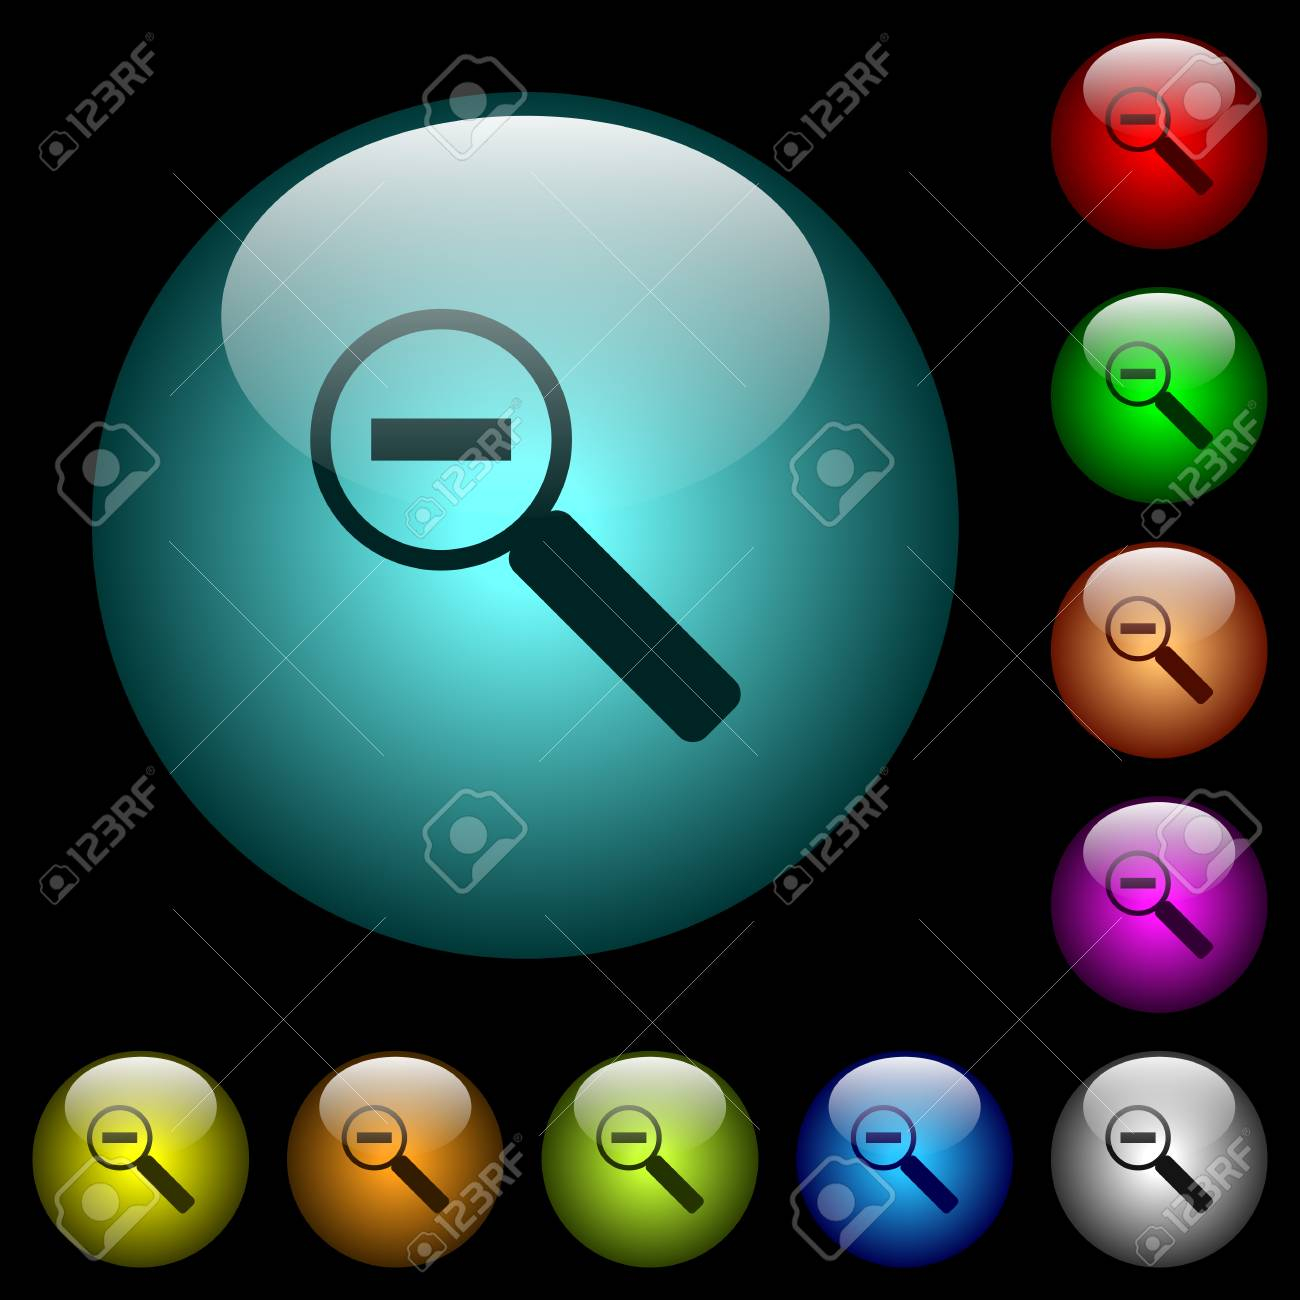 photo stock vector zoom out icons in color illuminated spherical glass buttons on black background can be used to black